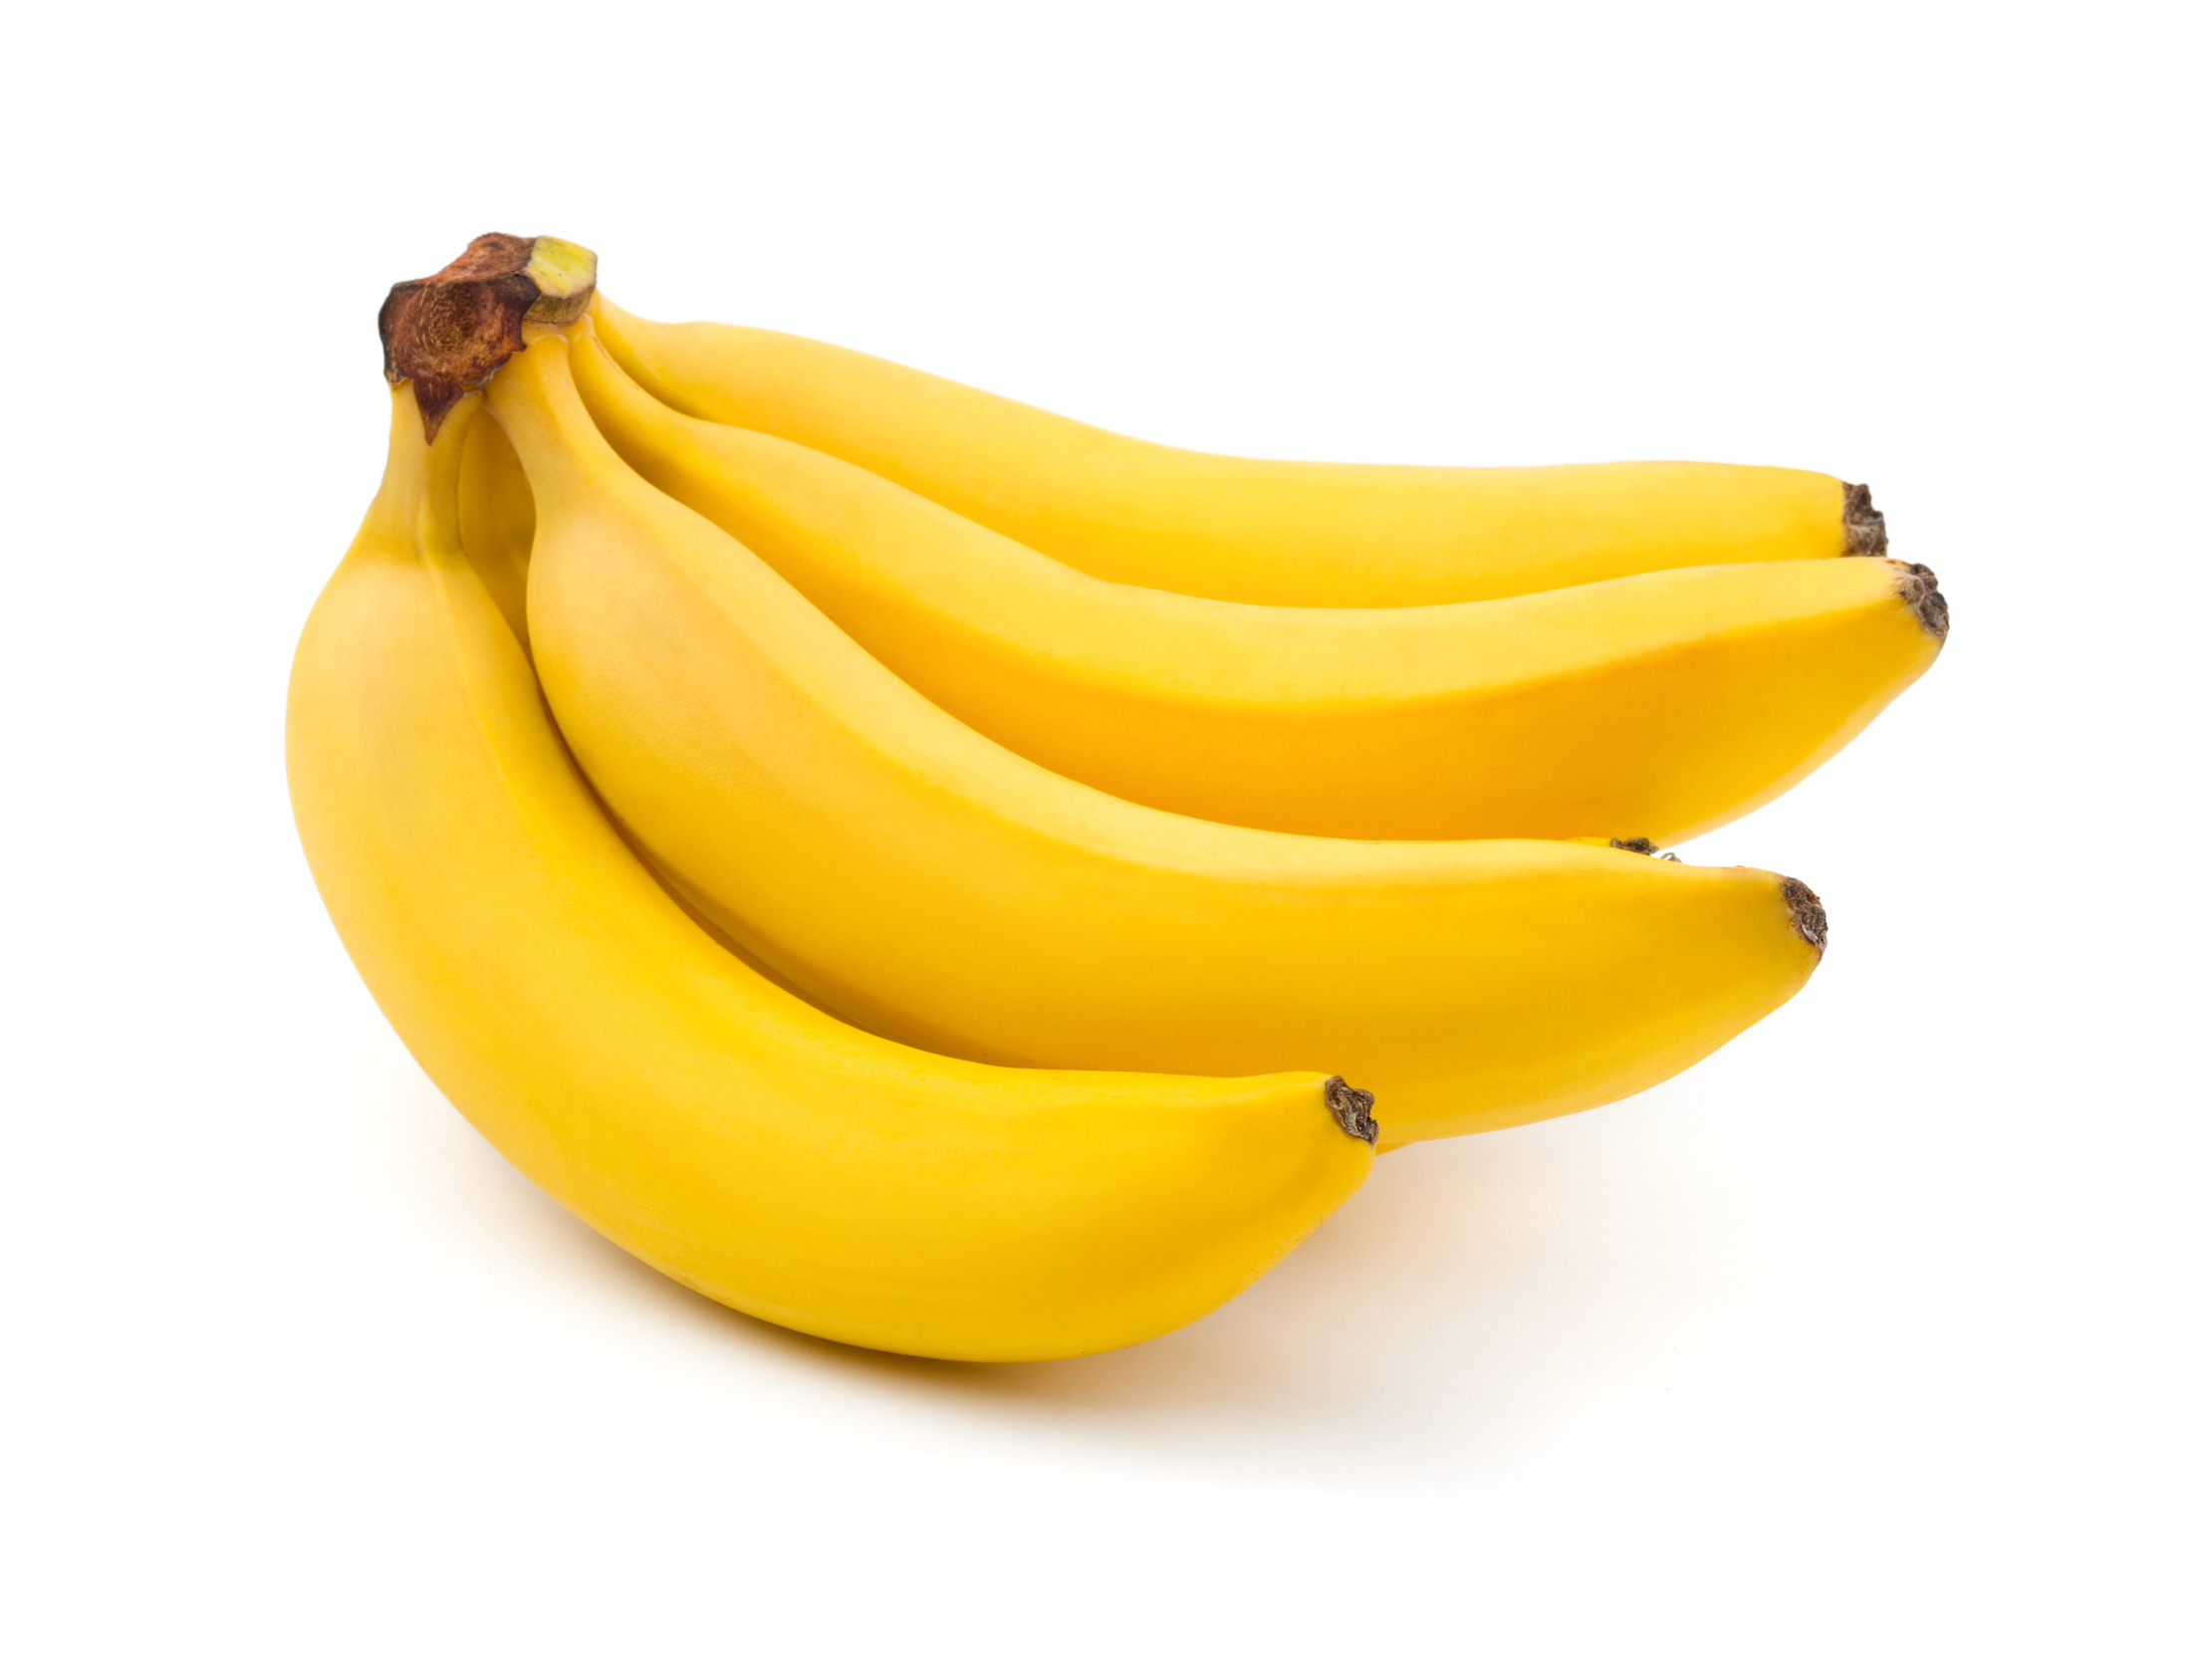 Smell Bananas, Drop Pounds! | UberFacts